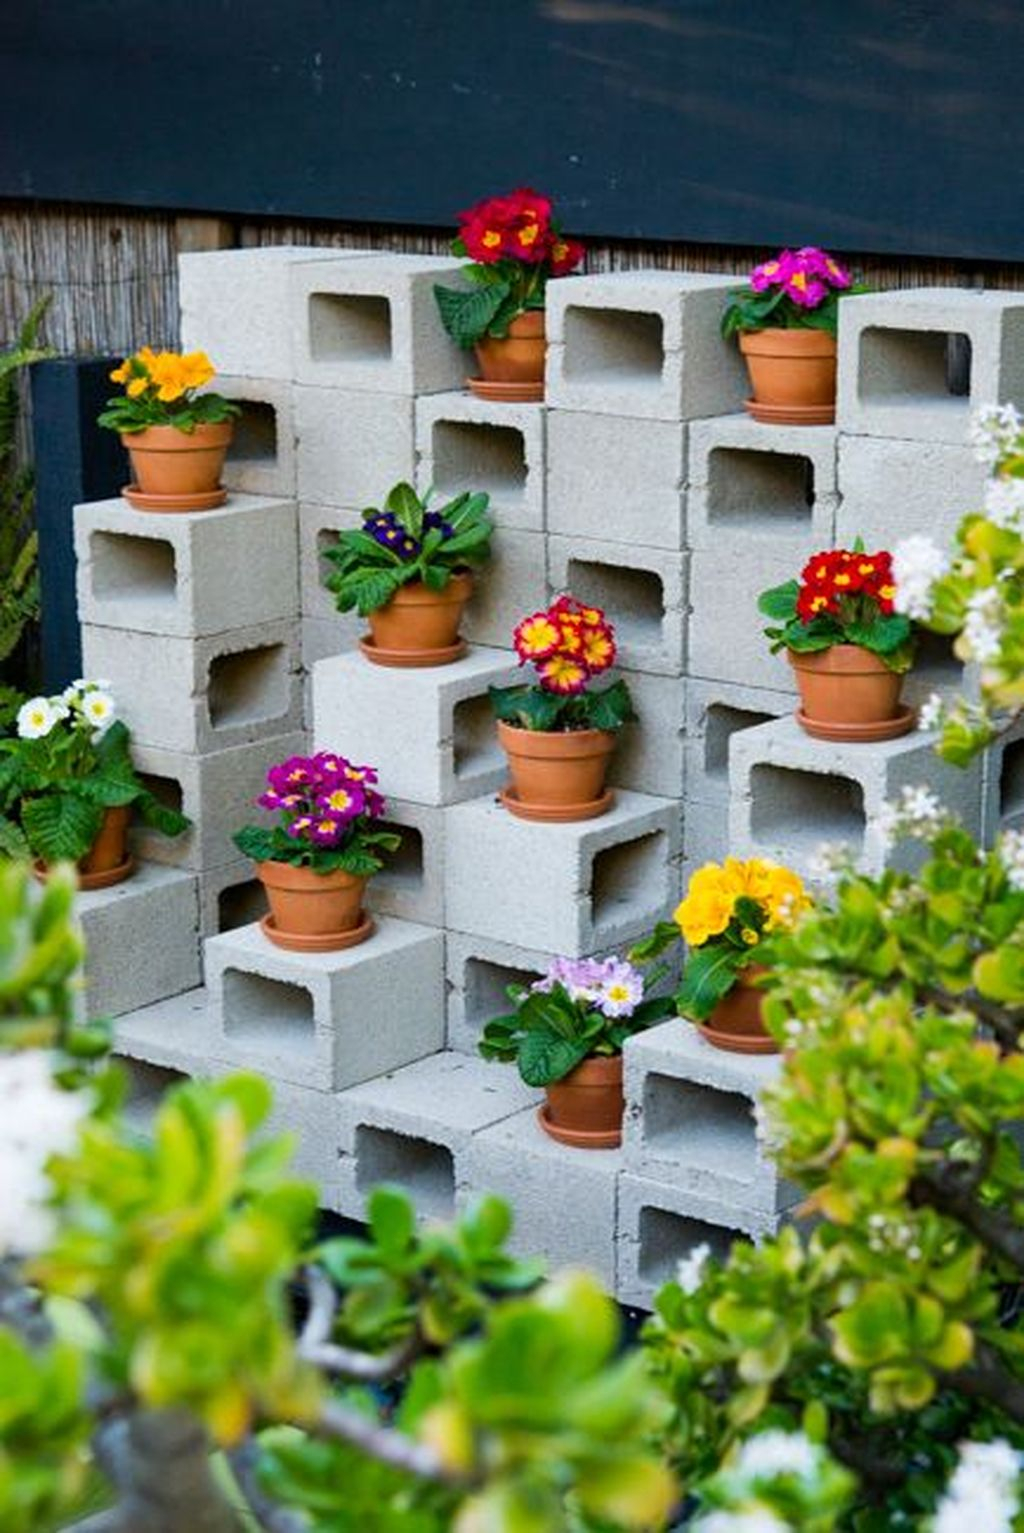 Stylish Garden Design Ideas With Cinder Block To Try 16